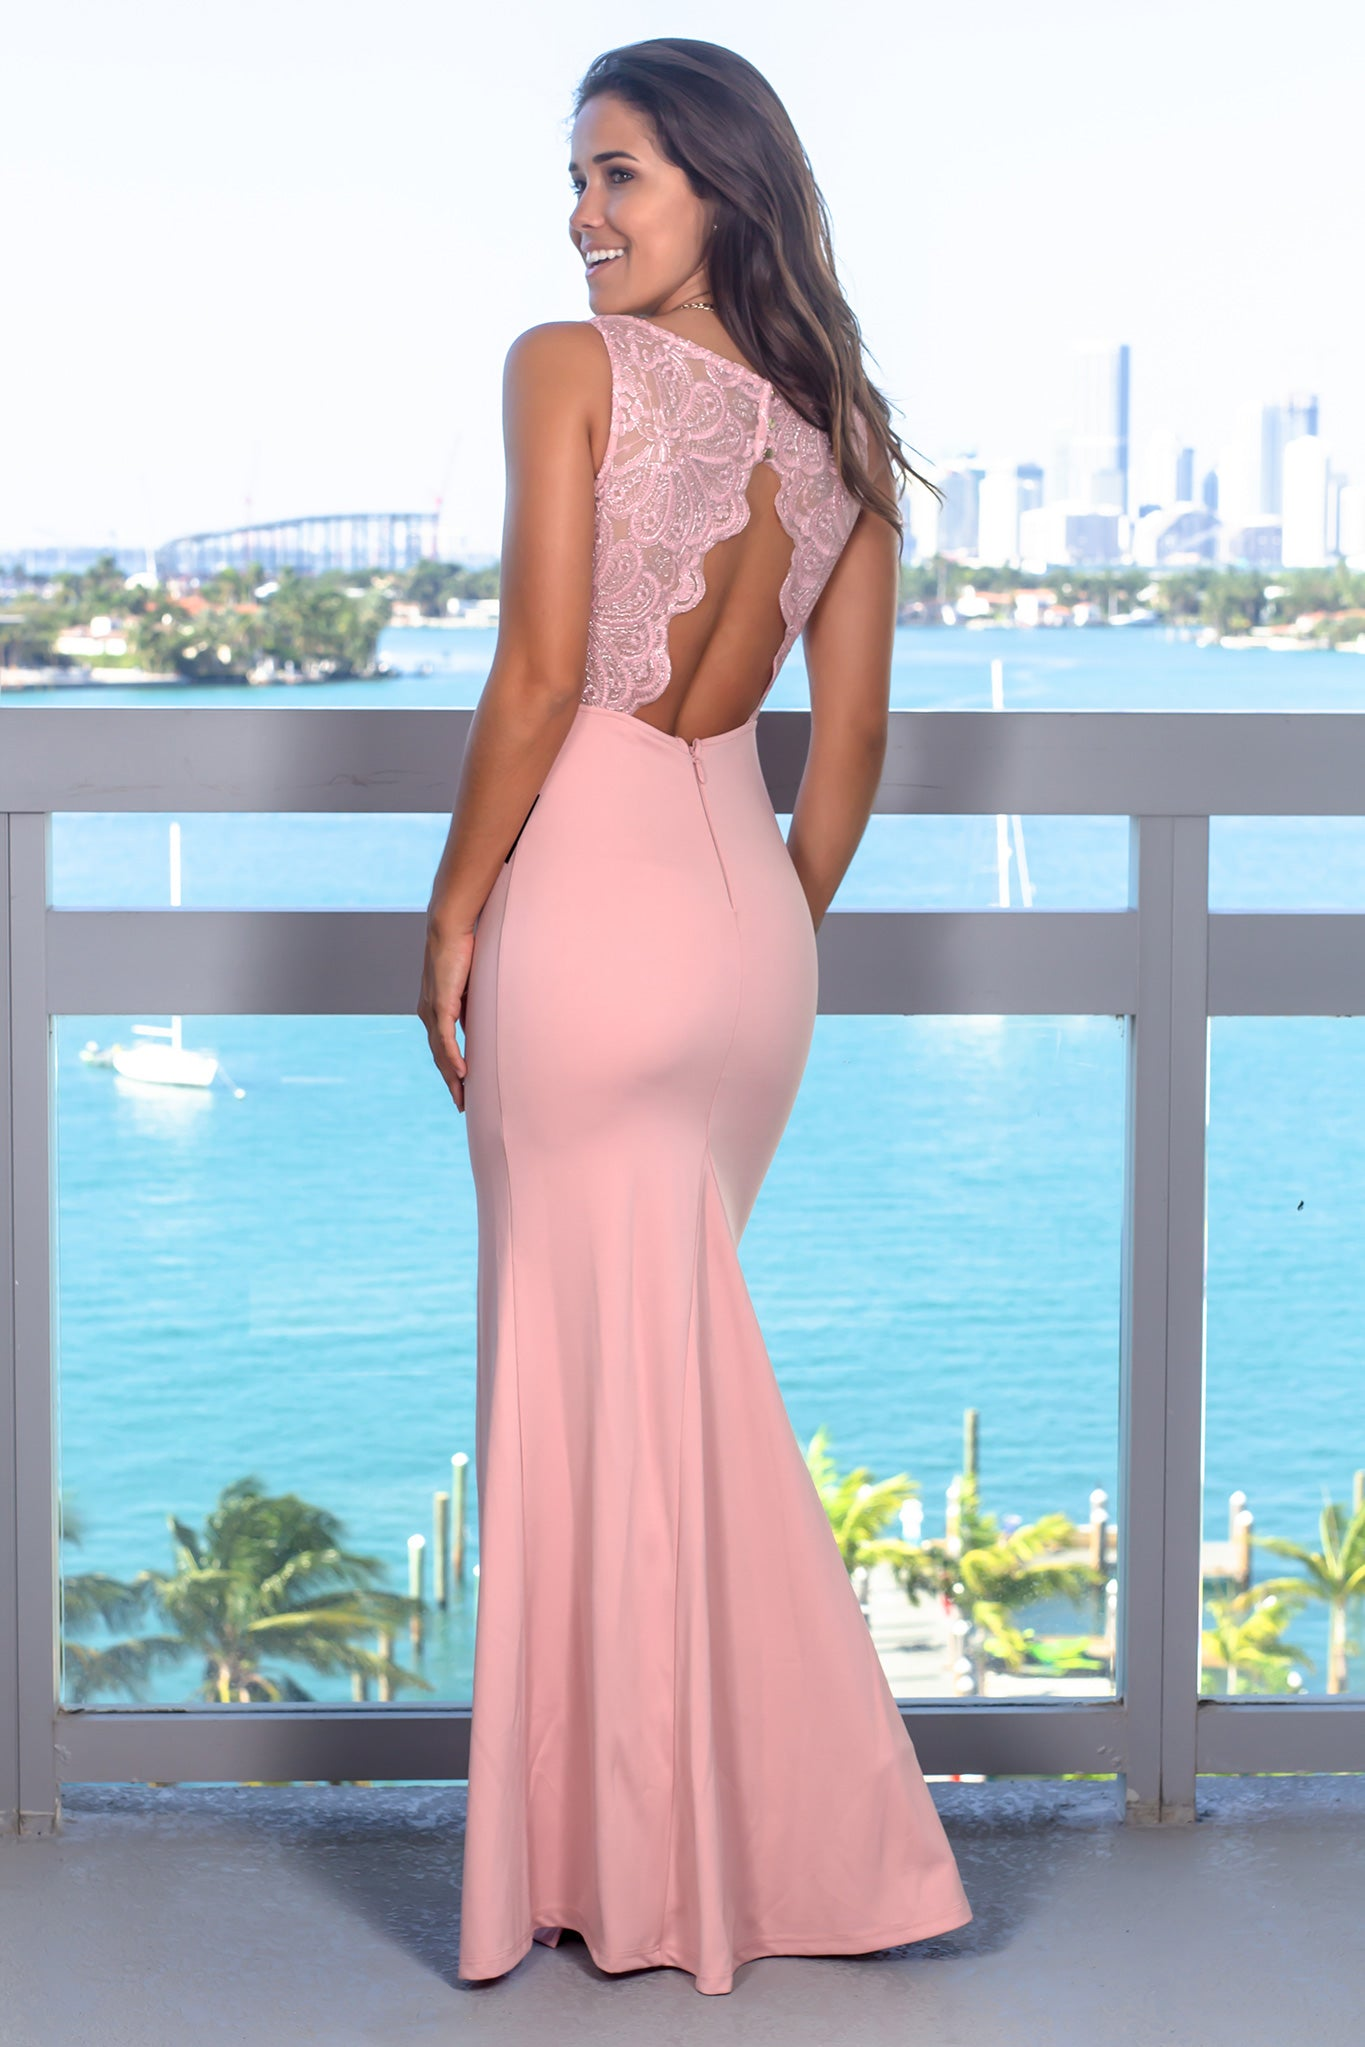 947ceb5a768 Pink Maxi Dress with Jeweled Belt and Open Back